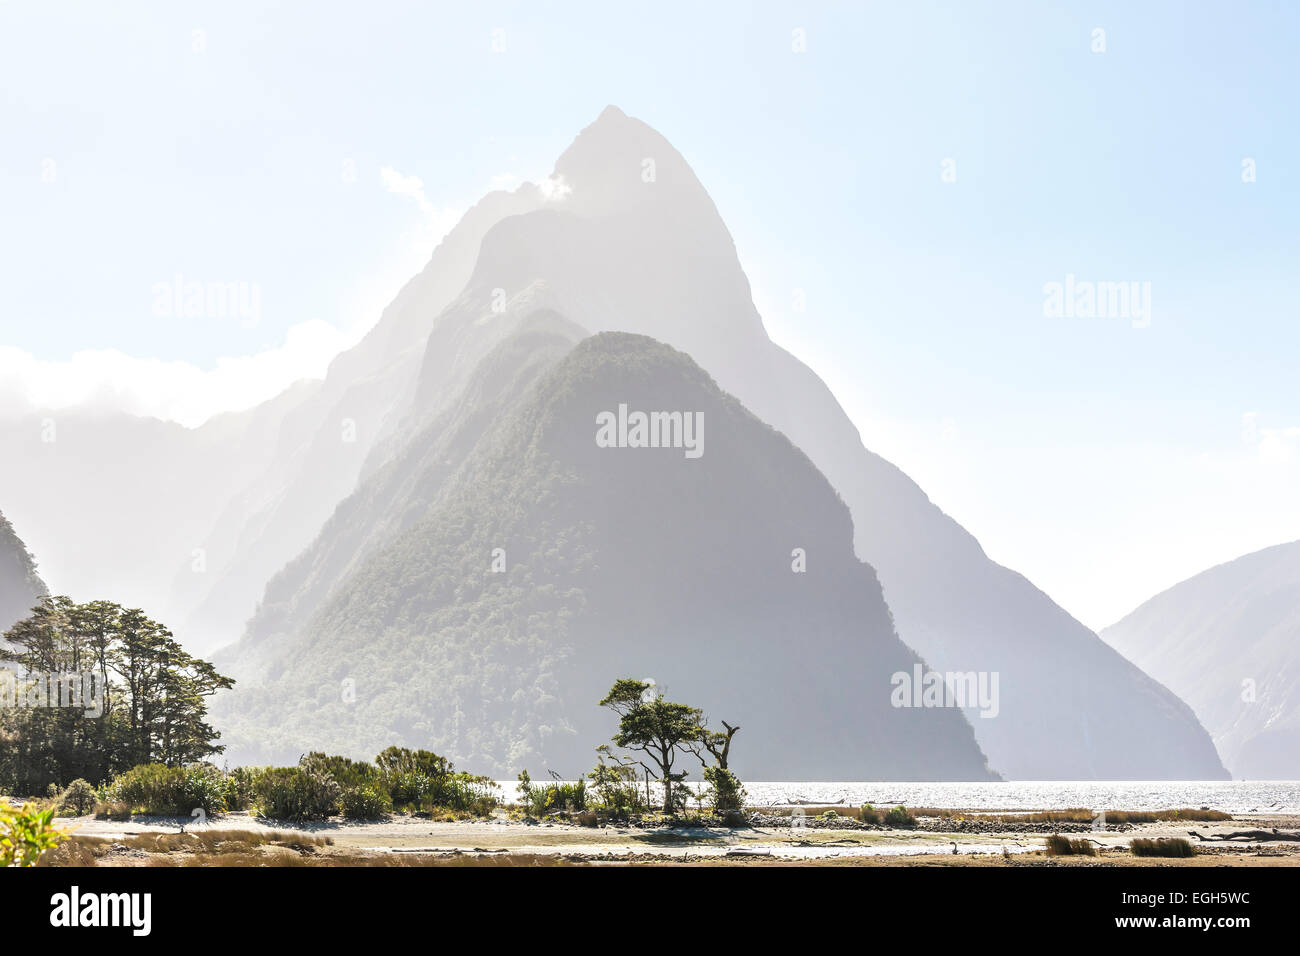 https://c7.alamy.com/comp/EGH5WC/new-zealand-milford-sound-with-mitre-peak-in-fiordland-national-park-EGH5WC.jpg